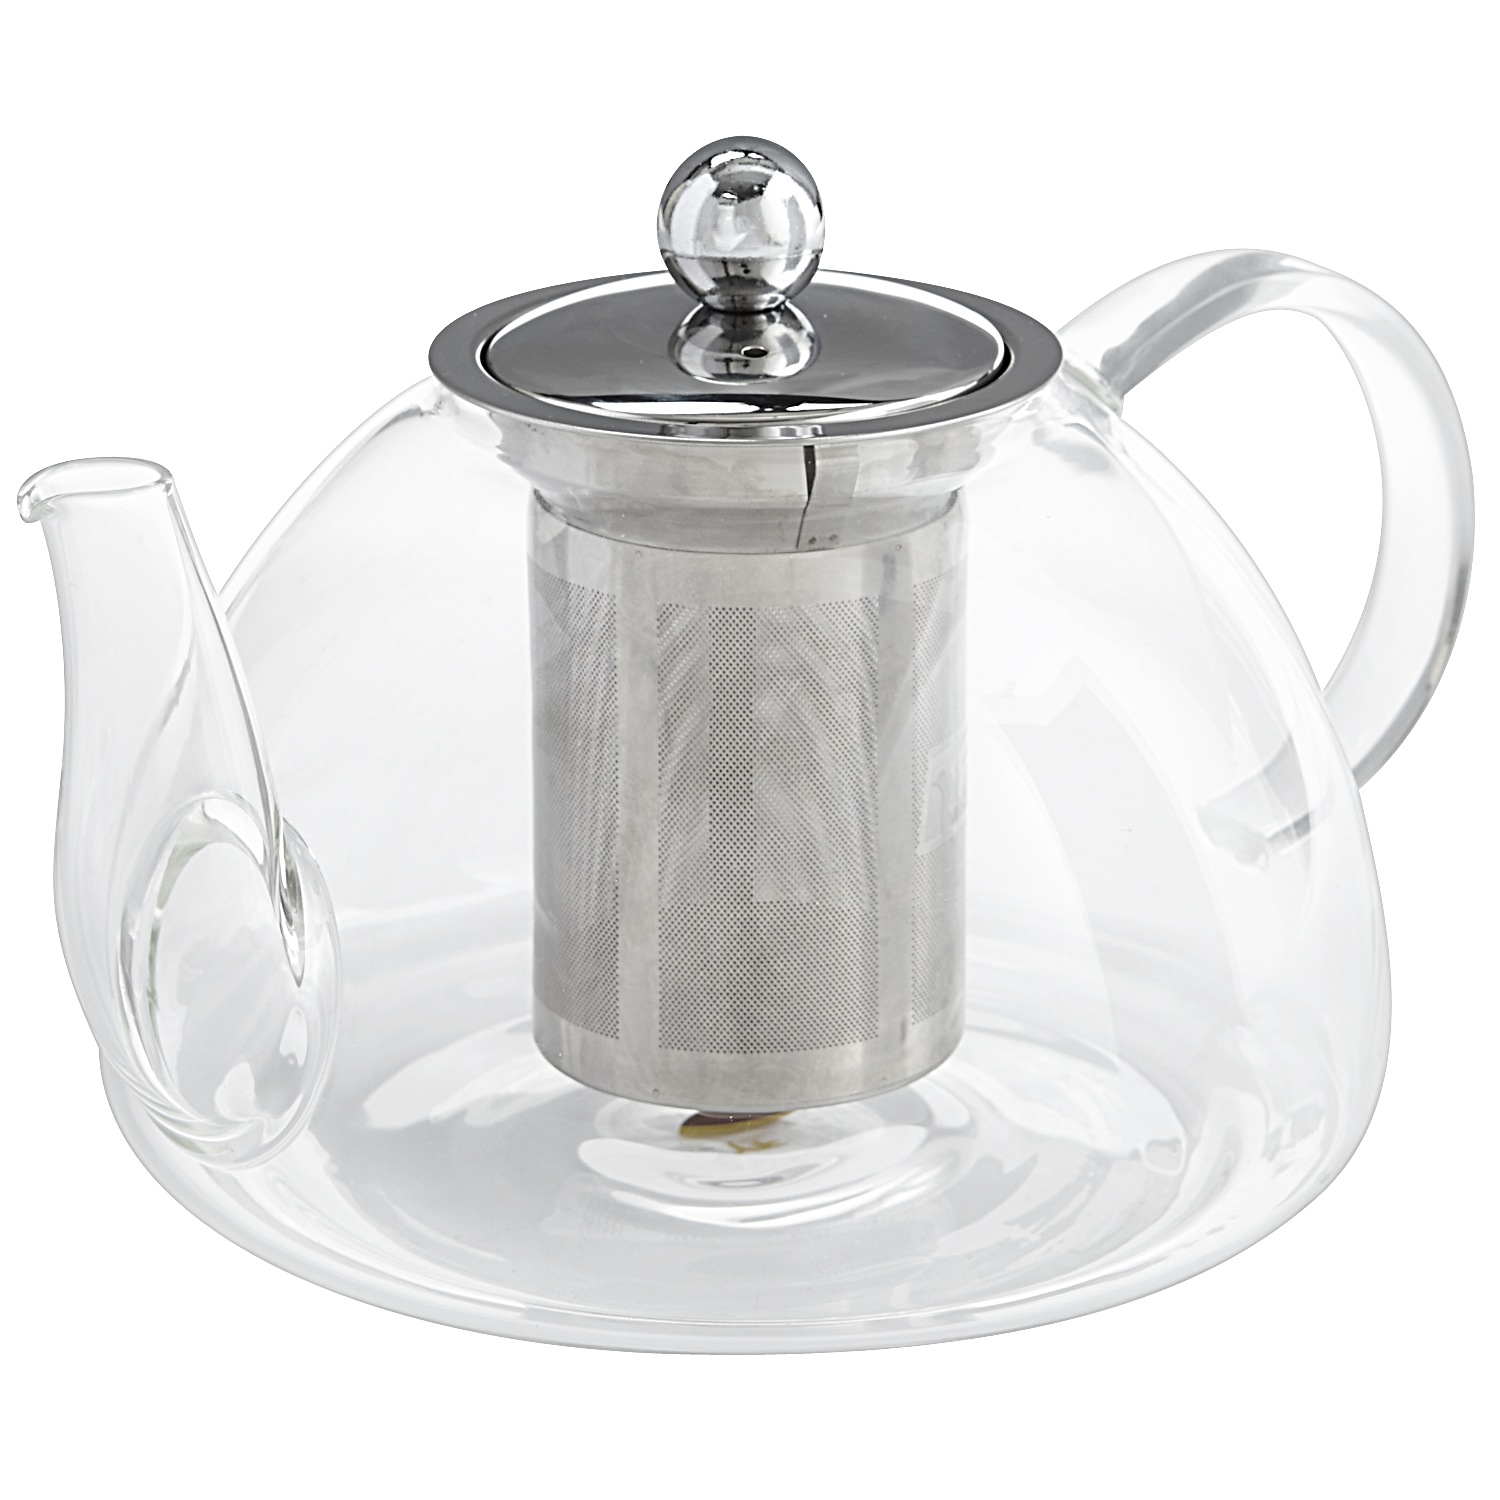 Tea Infuser Pot